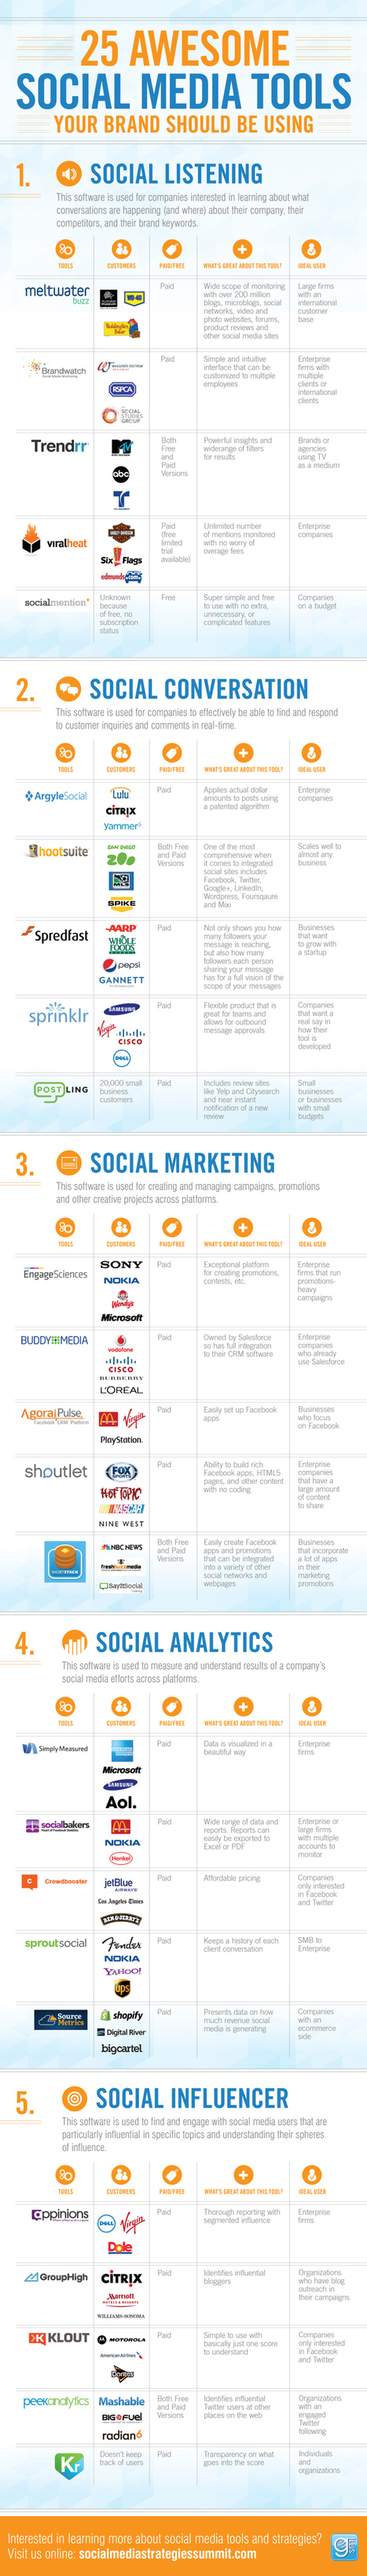 25 Awesome Social Media Tools You Should Be Using (Infographic) | Marketing in the new Age | Scoop.it